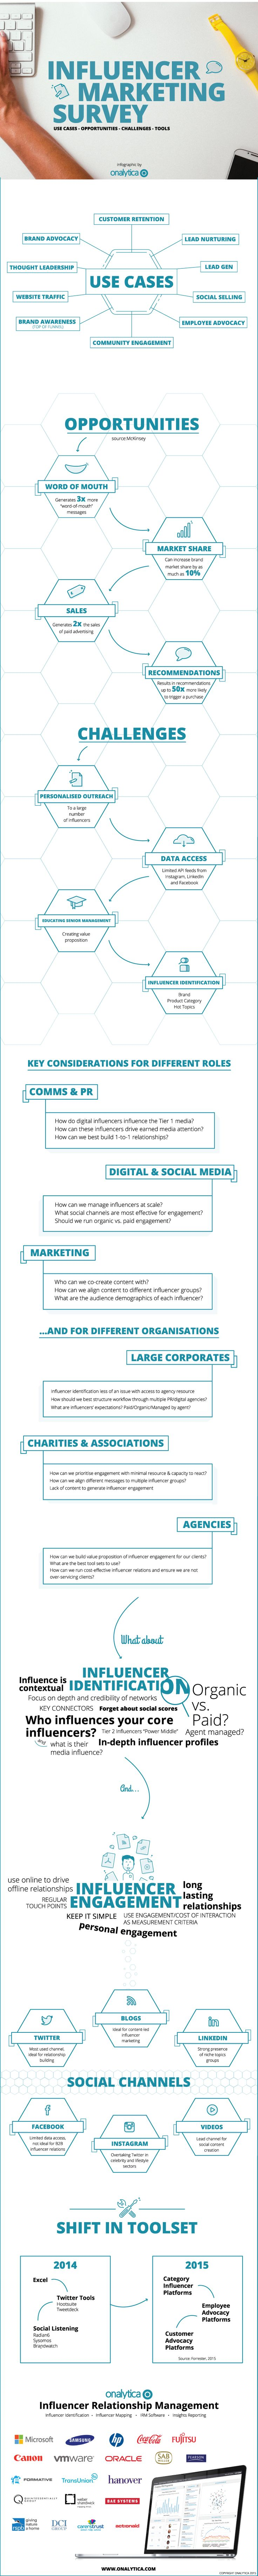 Onalytica Influencer Marketing Survey - Use Cases, Opportunities, Challenges and Tools #Infographic @Onalytica